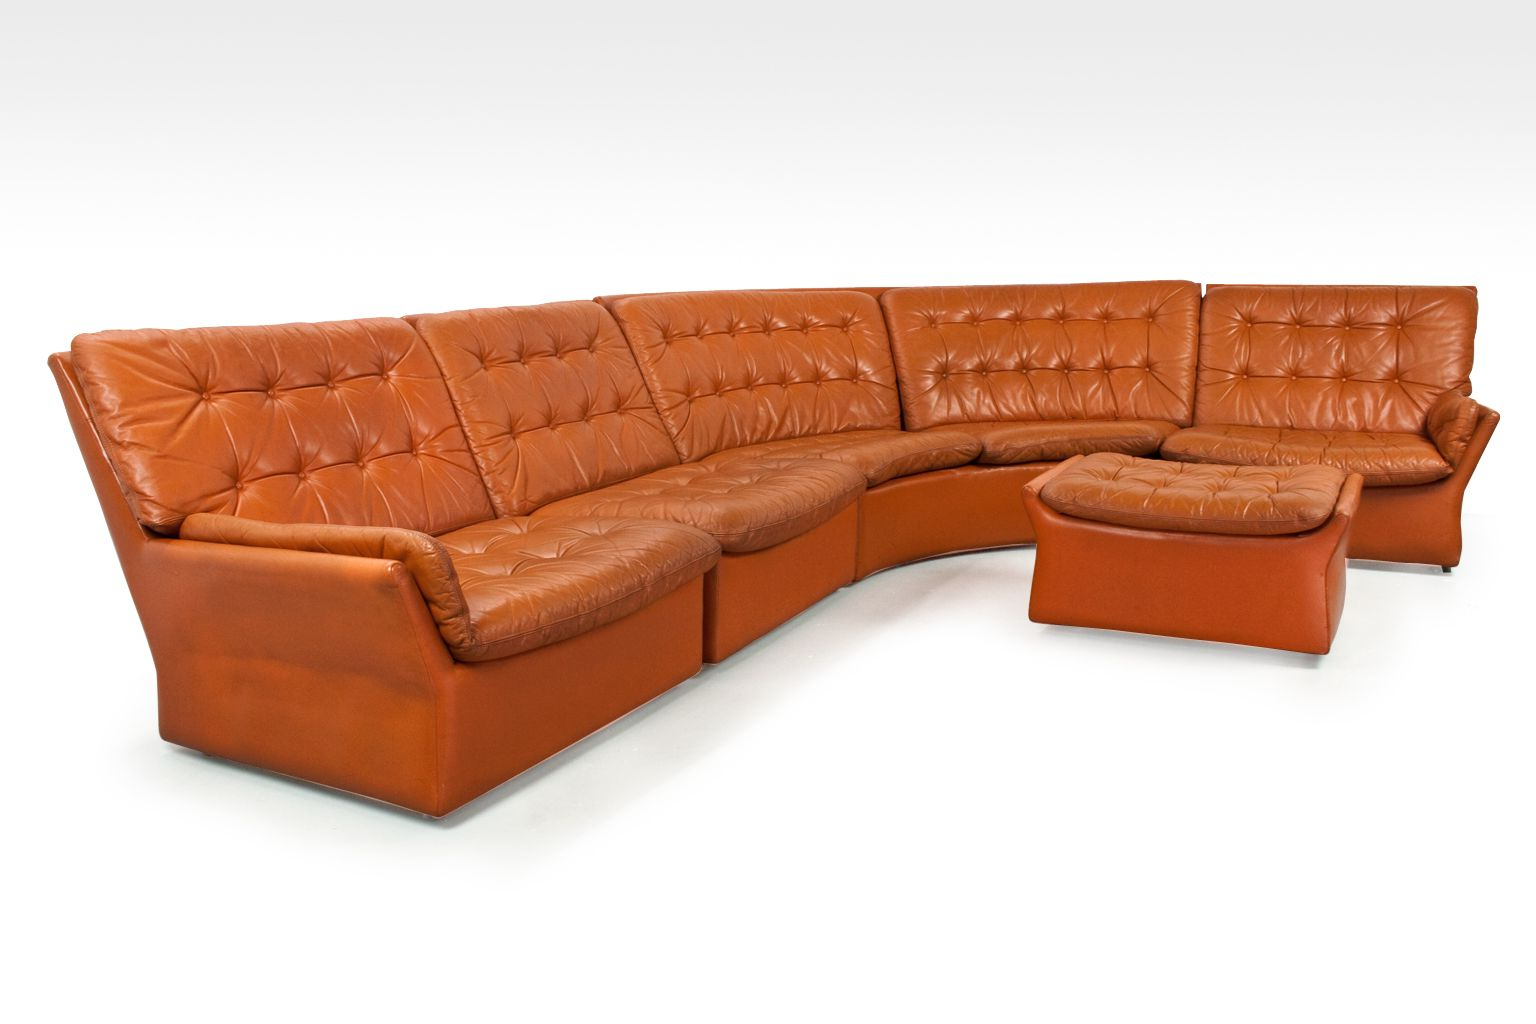 2018 Travis Cognac Leather 6 Piece Power Reclining Sectionals With Power Headrest & Usb With Cognac Leather Sectional – Tidex (View 14 of 20)